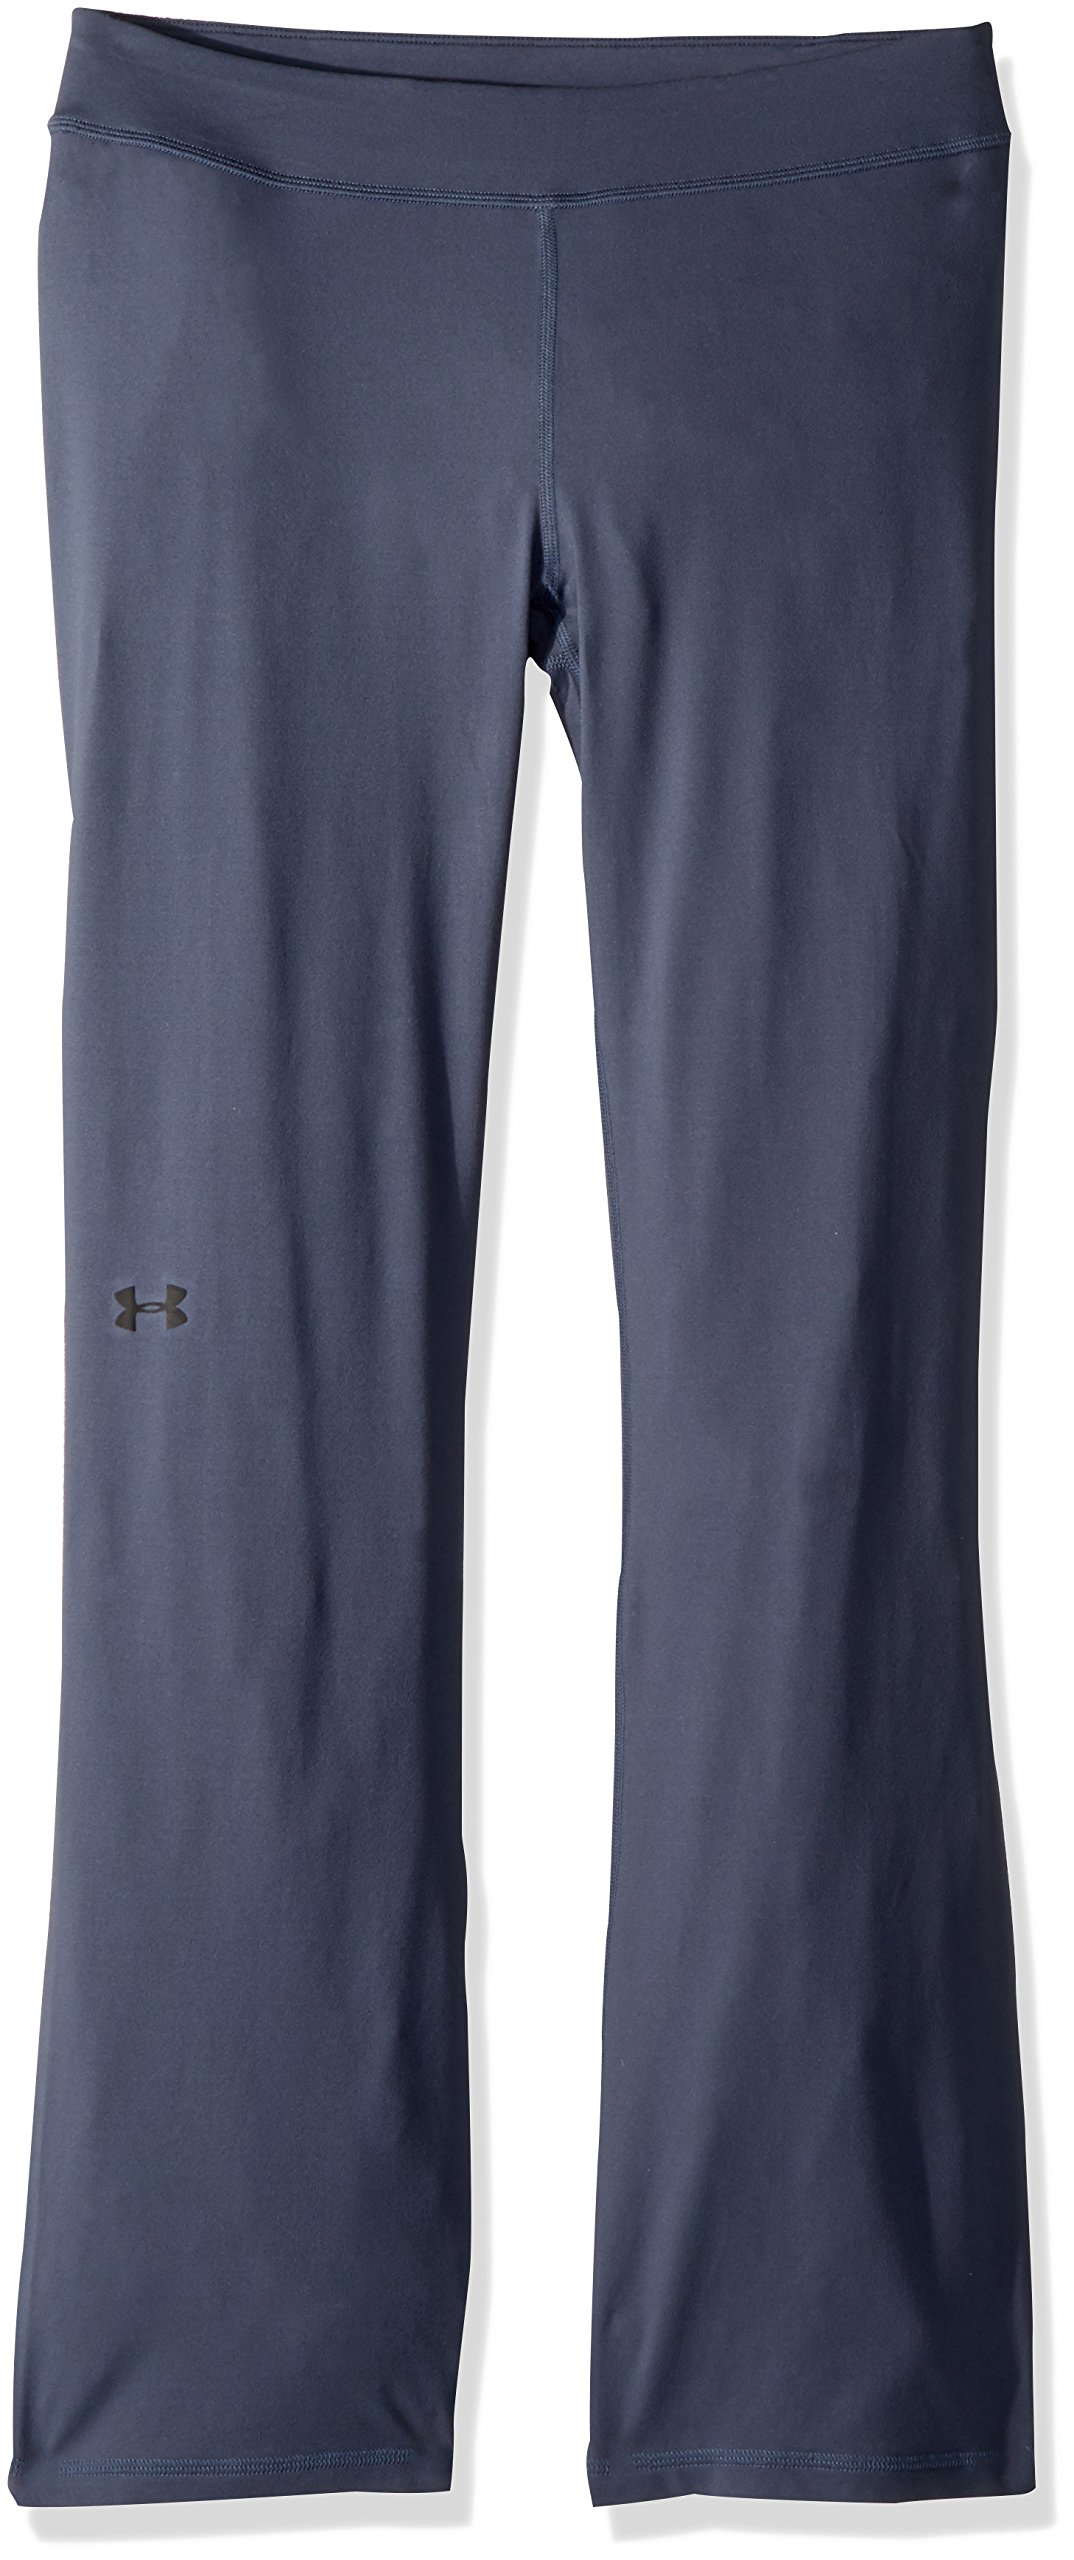 Under Armour Girls Elevated Training Flare Pants,Apollo Gray (962)/Black, Youth Large